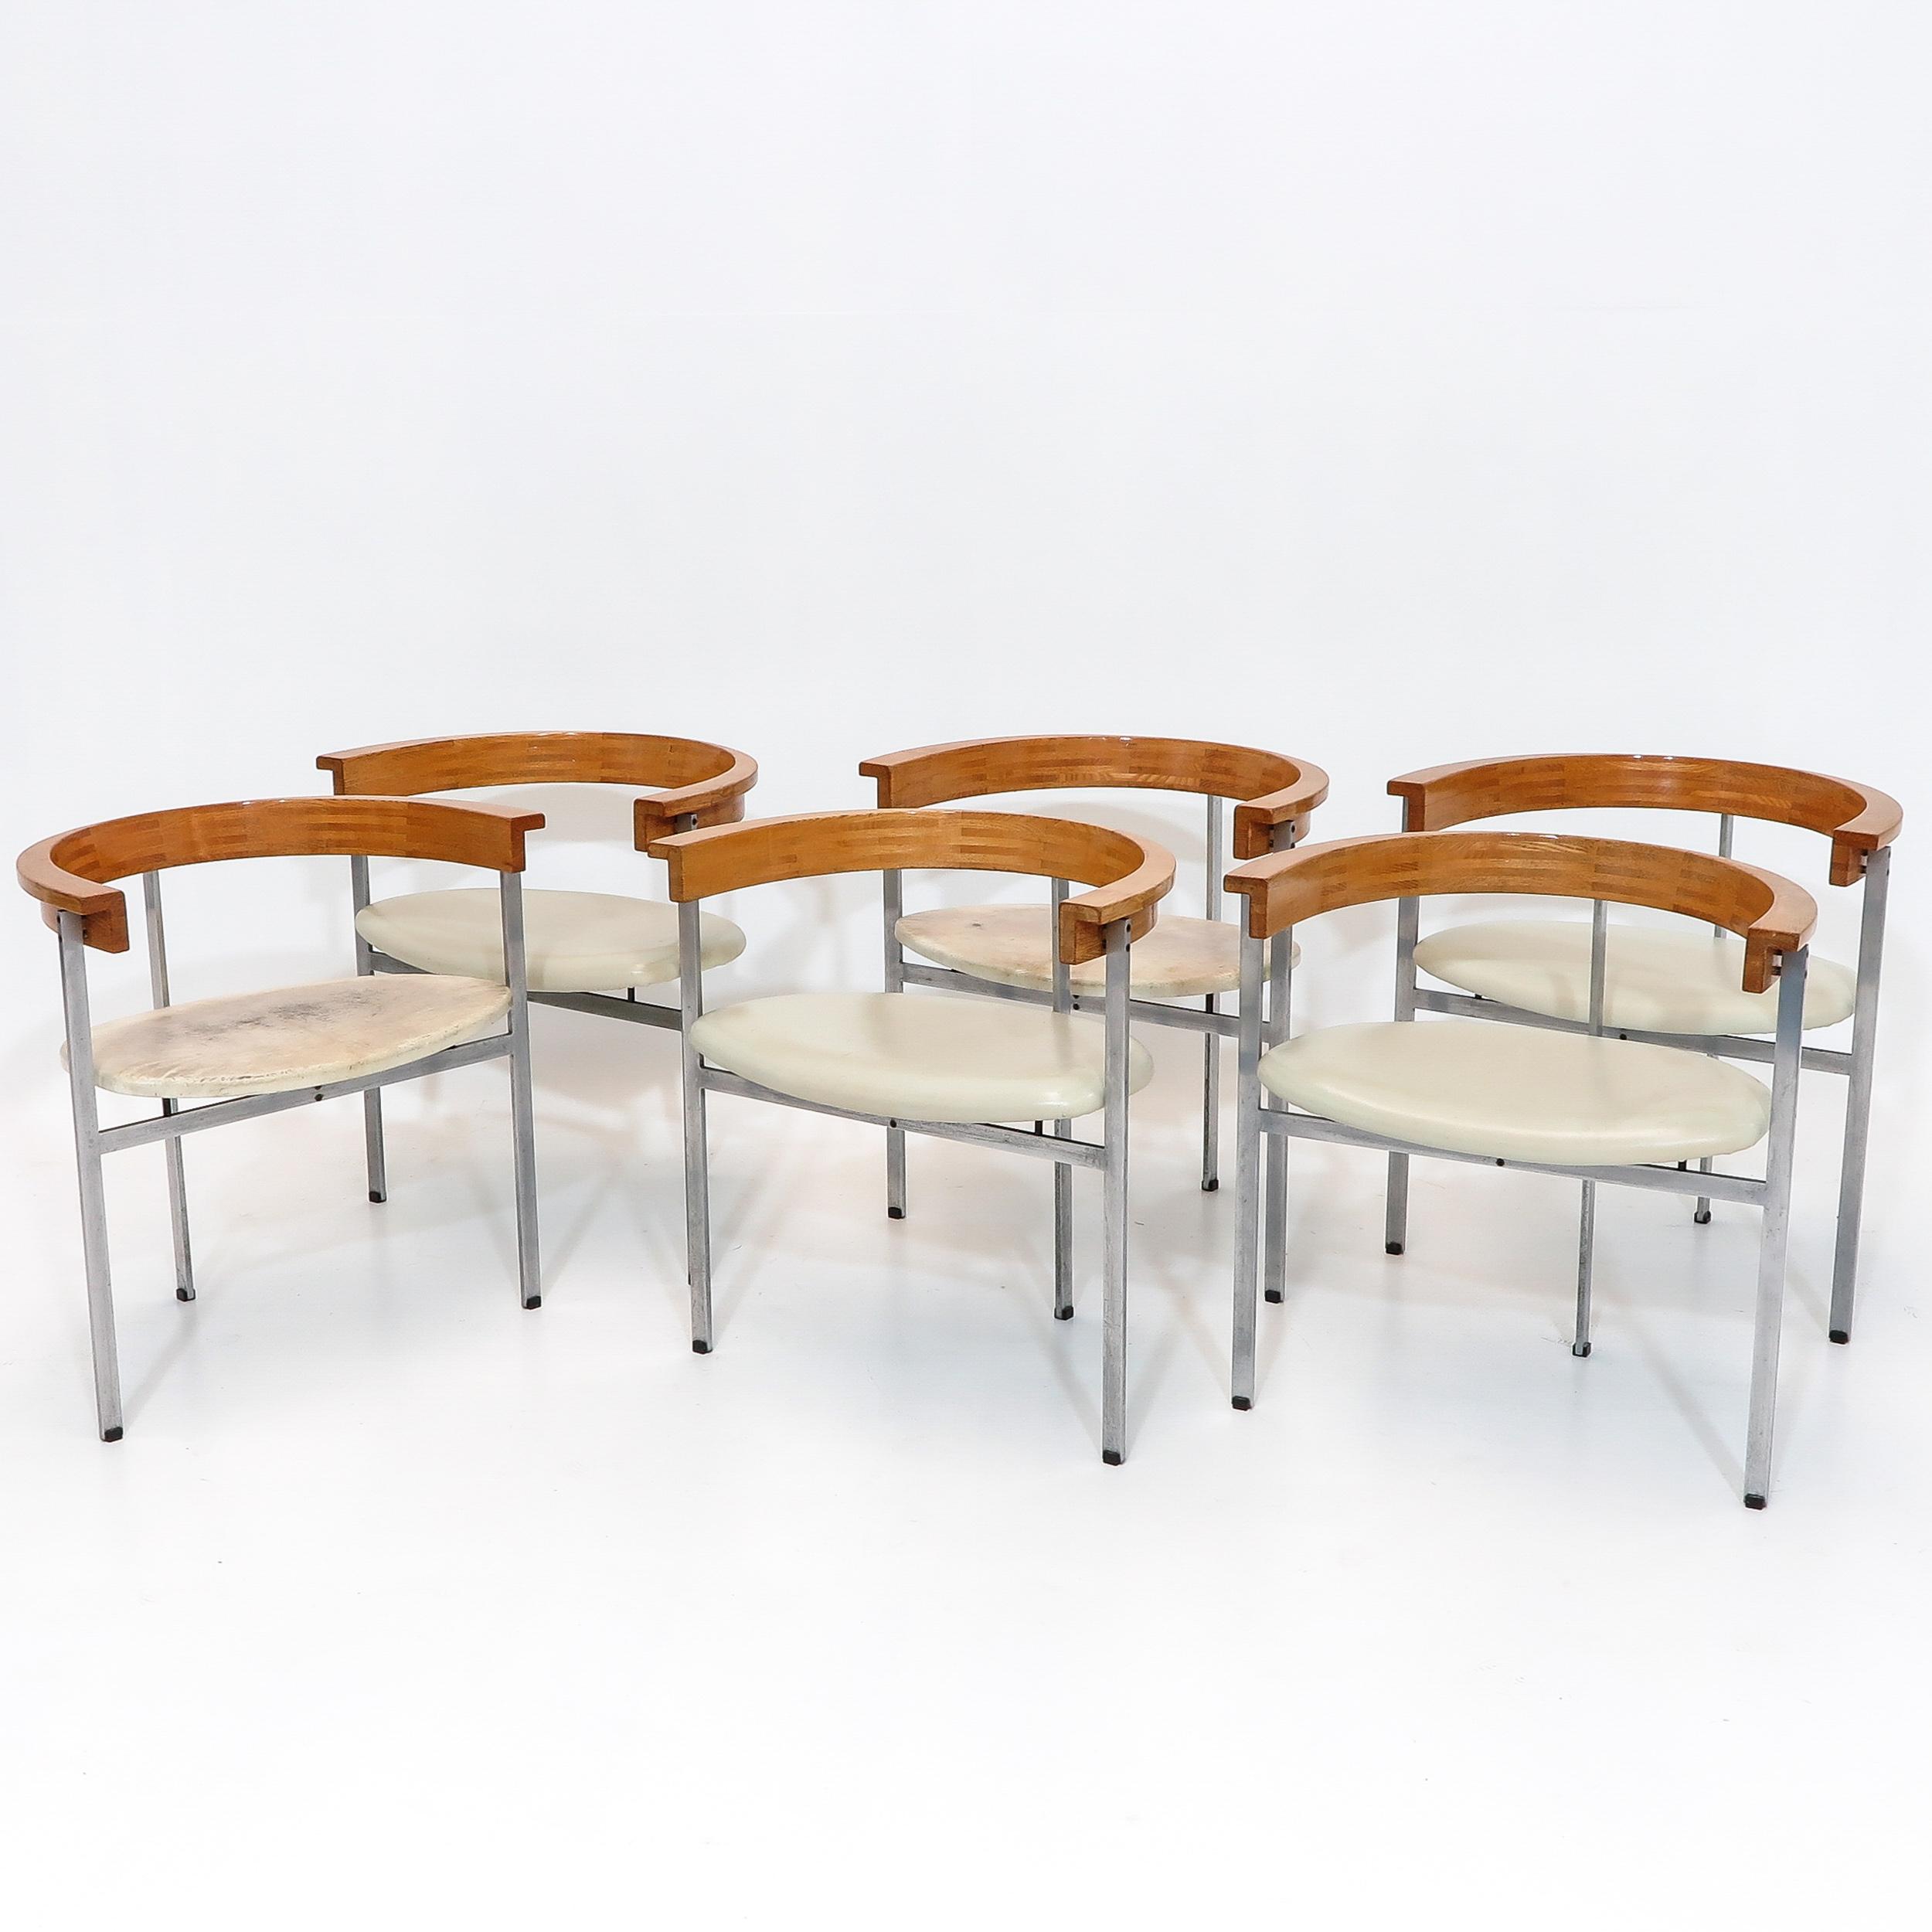 A Set of Six Very Rare Designer Poul Kjaerholm Chairs